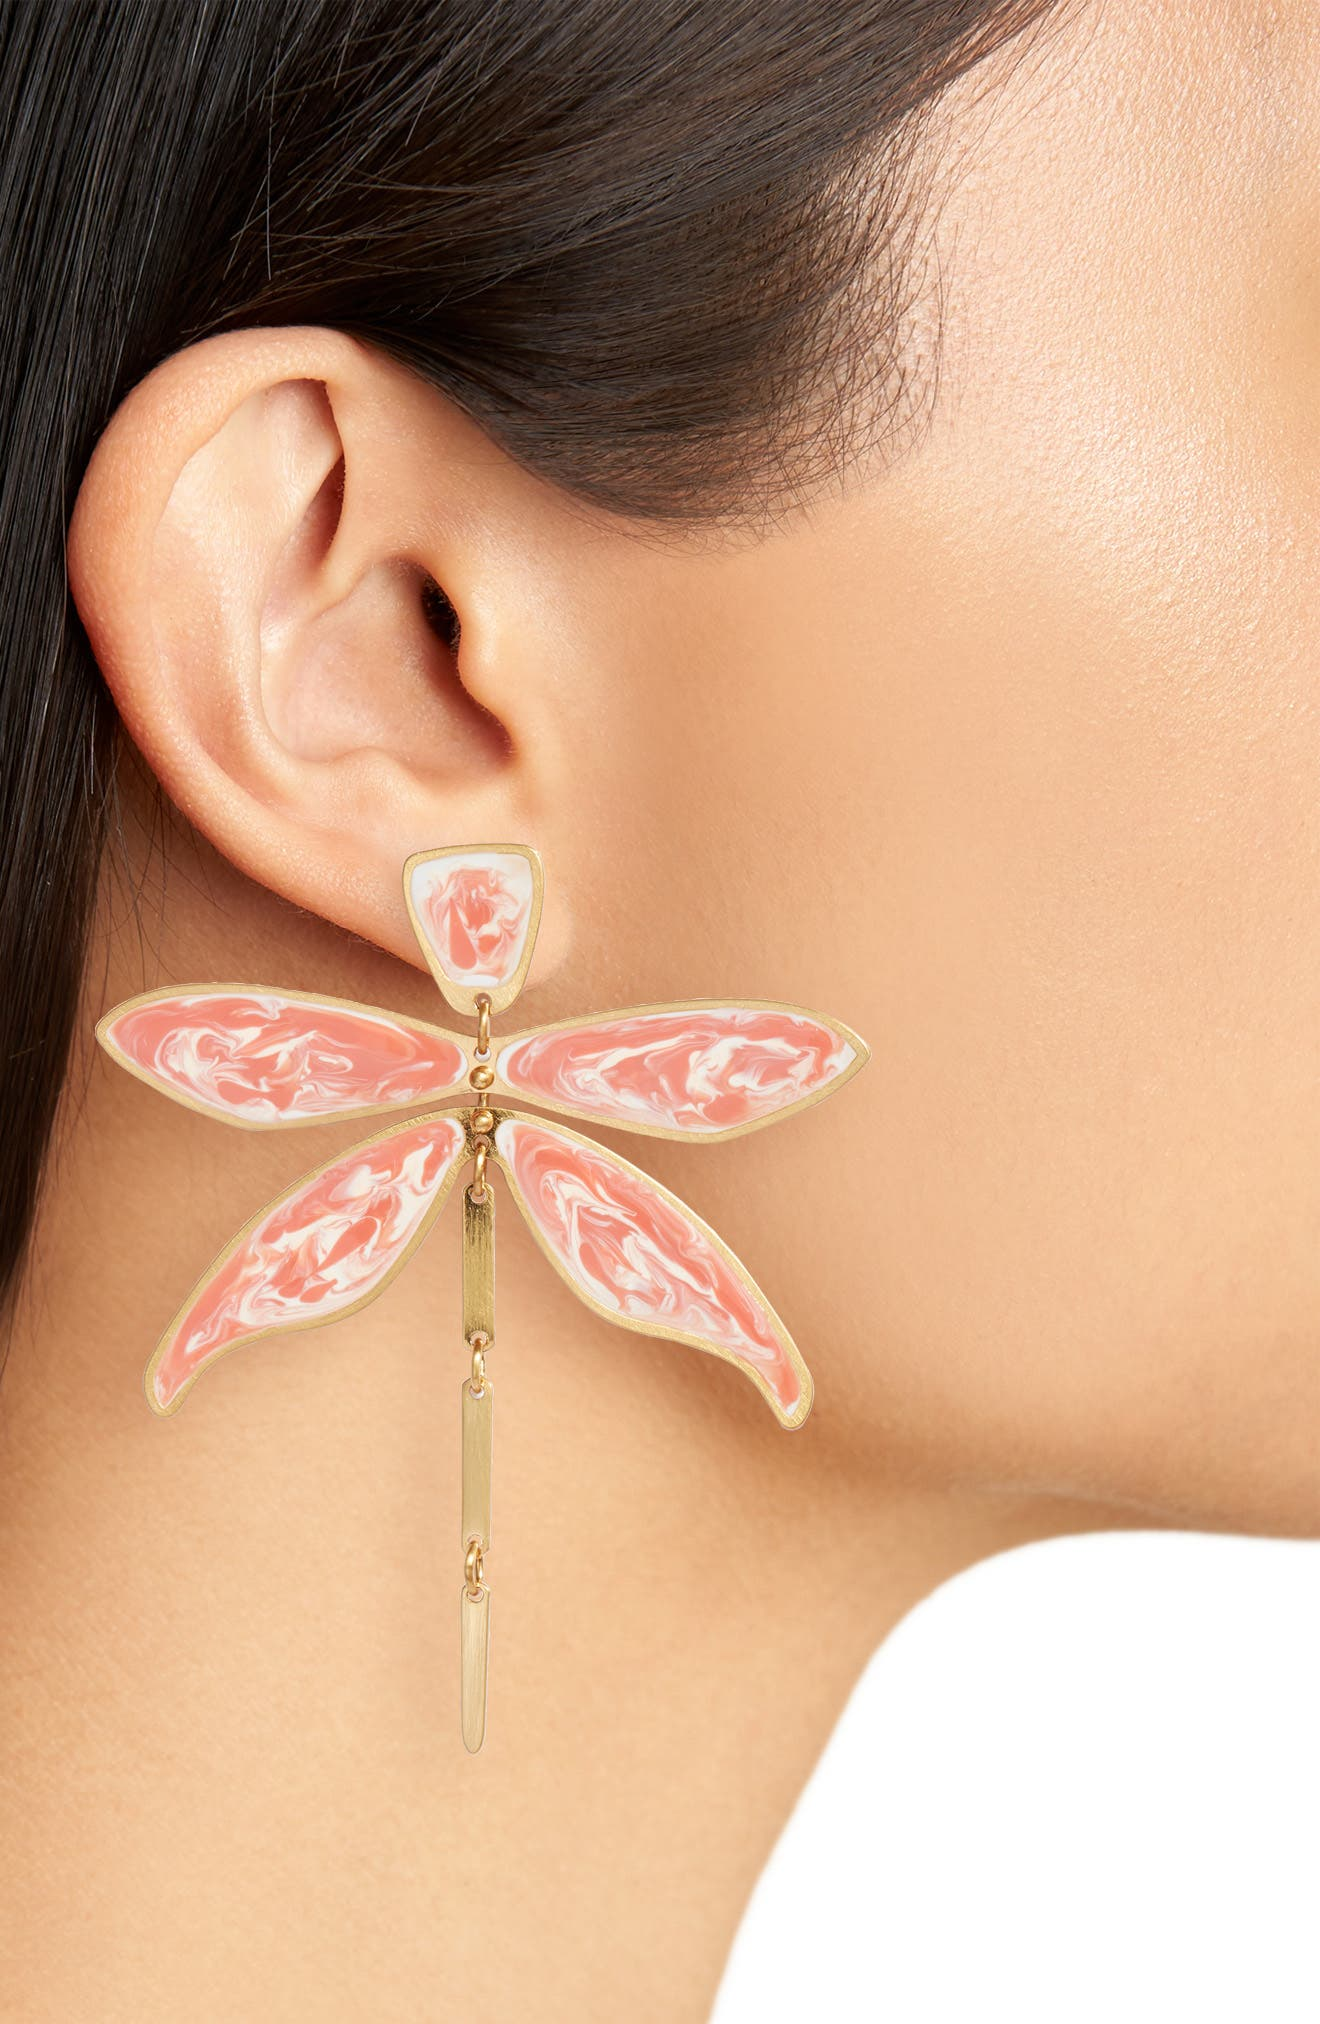 Articulated Dragonfly Earrings,                             Alternate thumbnail 7, color,